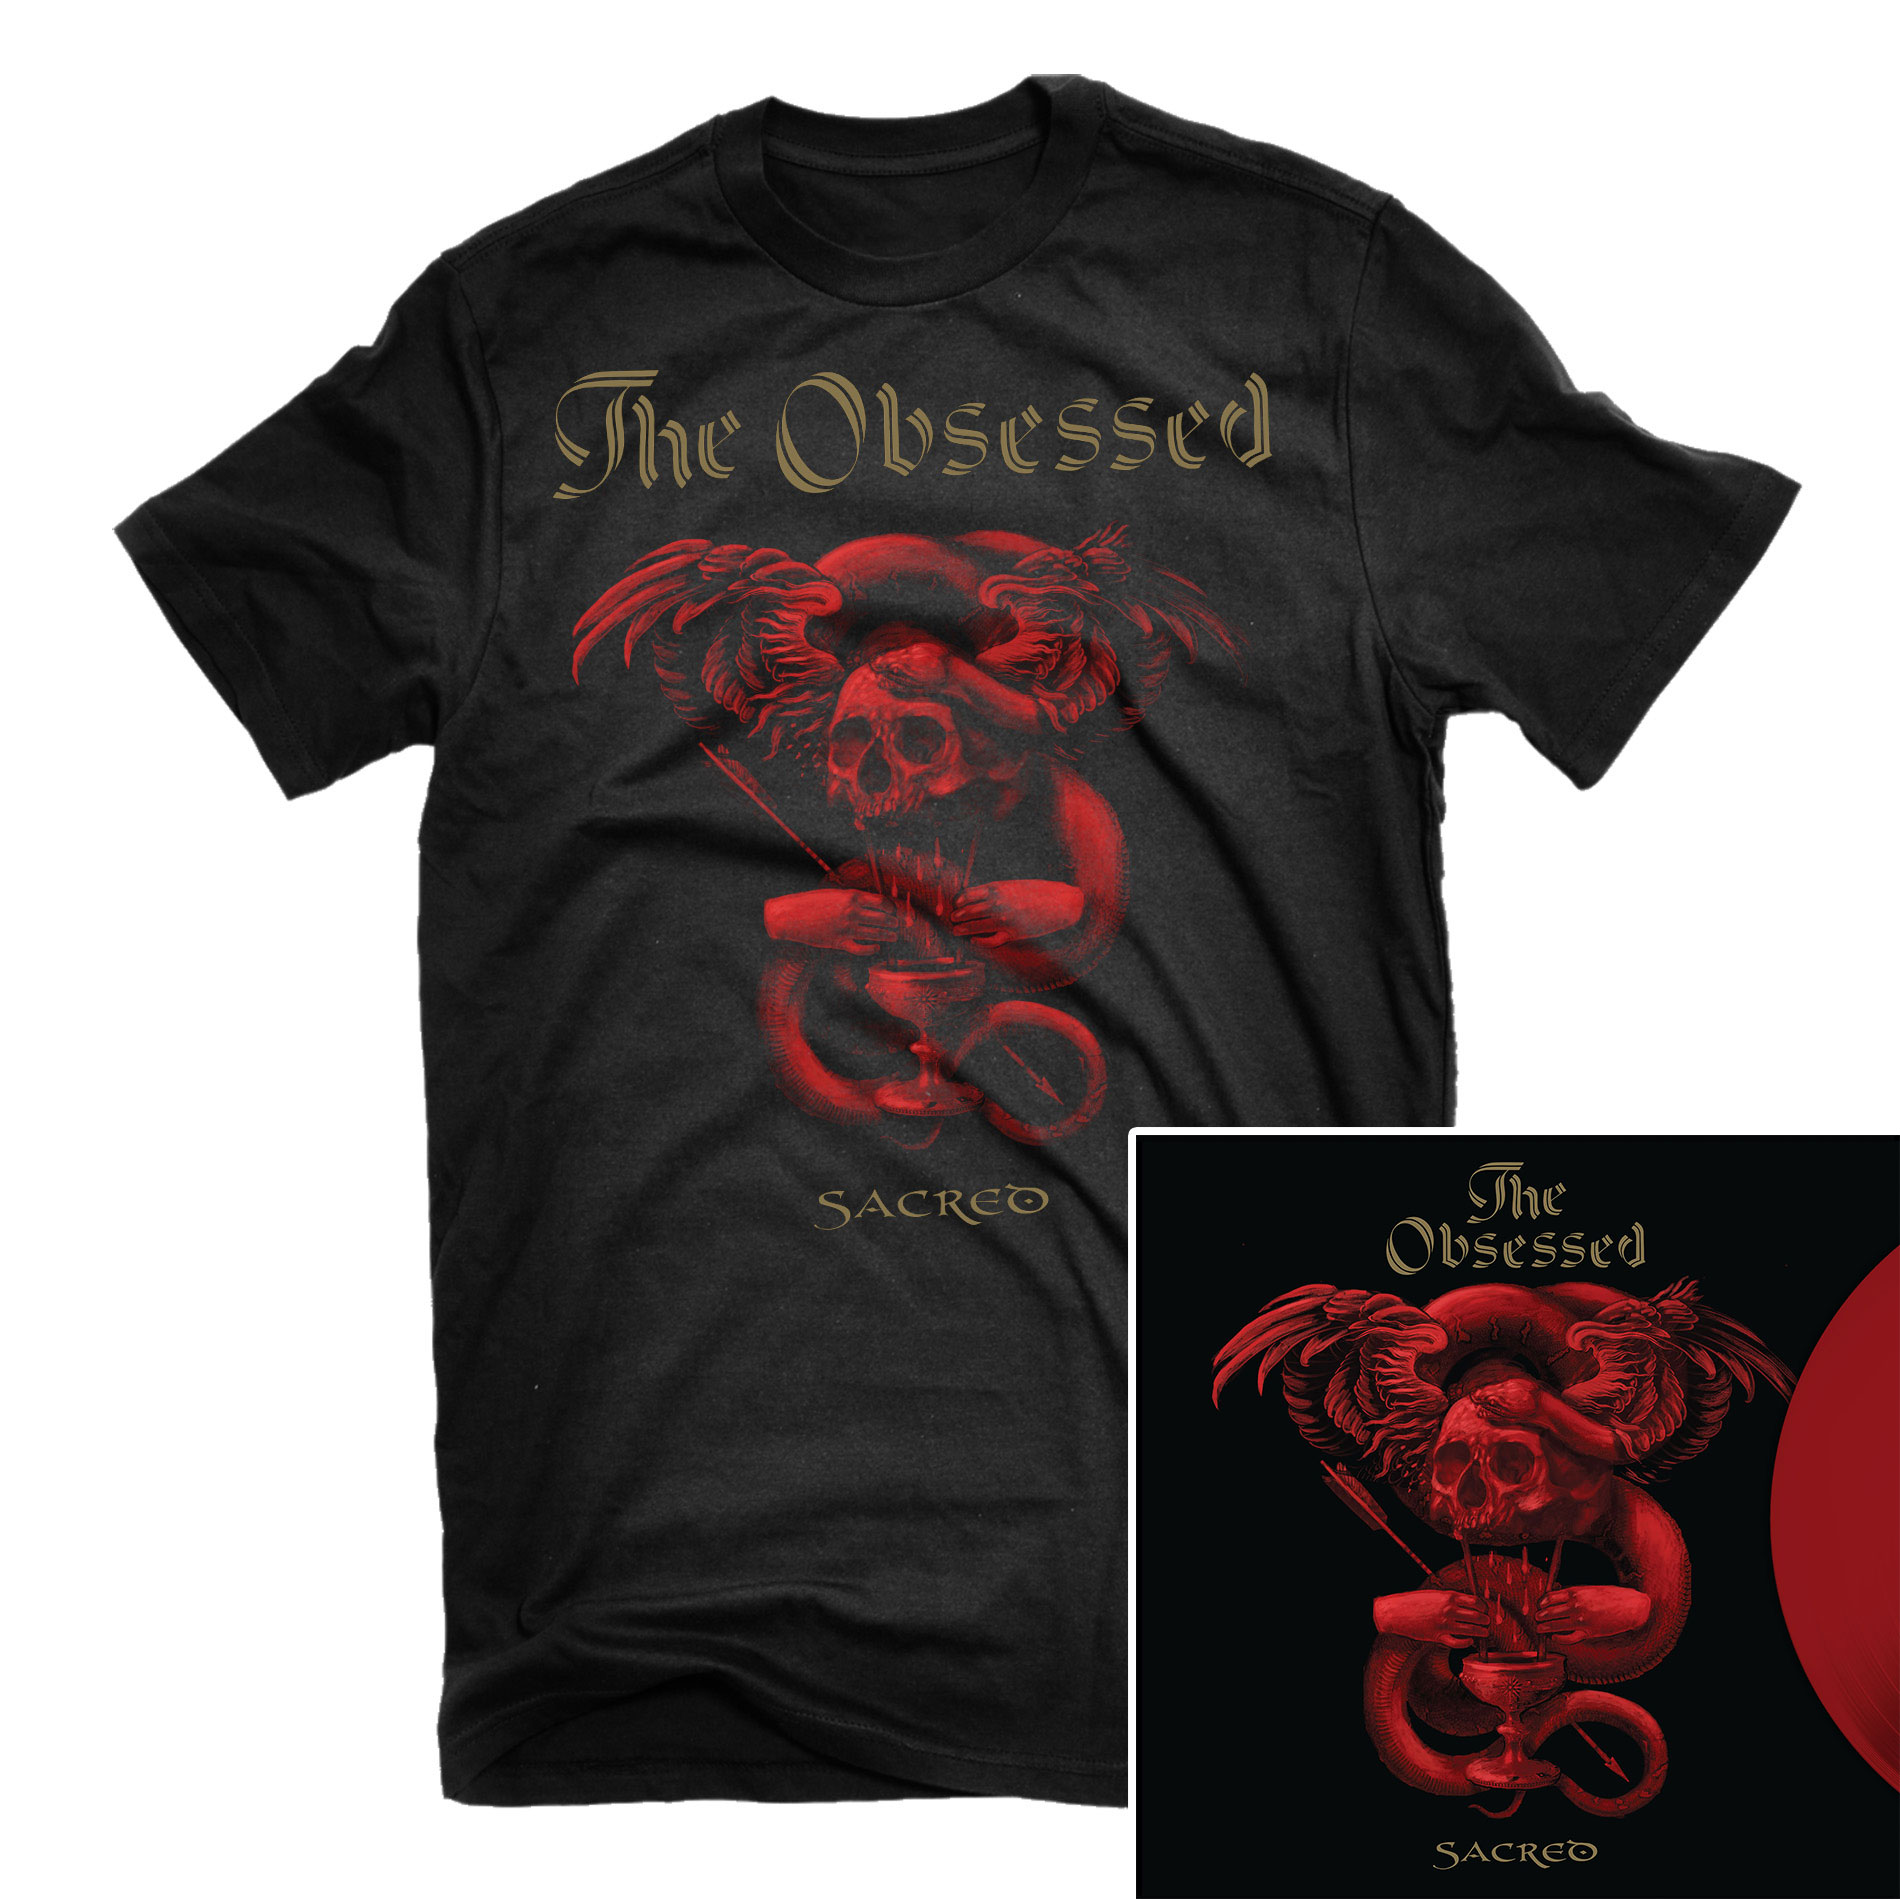 Sacred T Shirt + LP Bundle